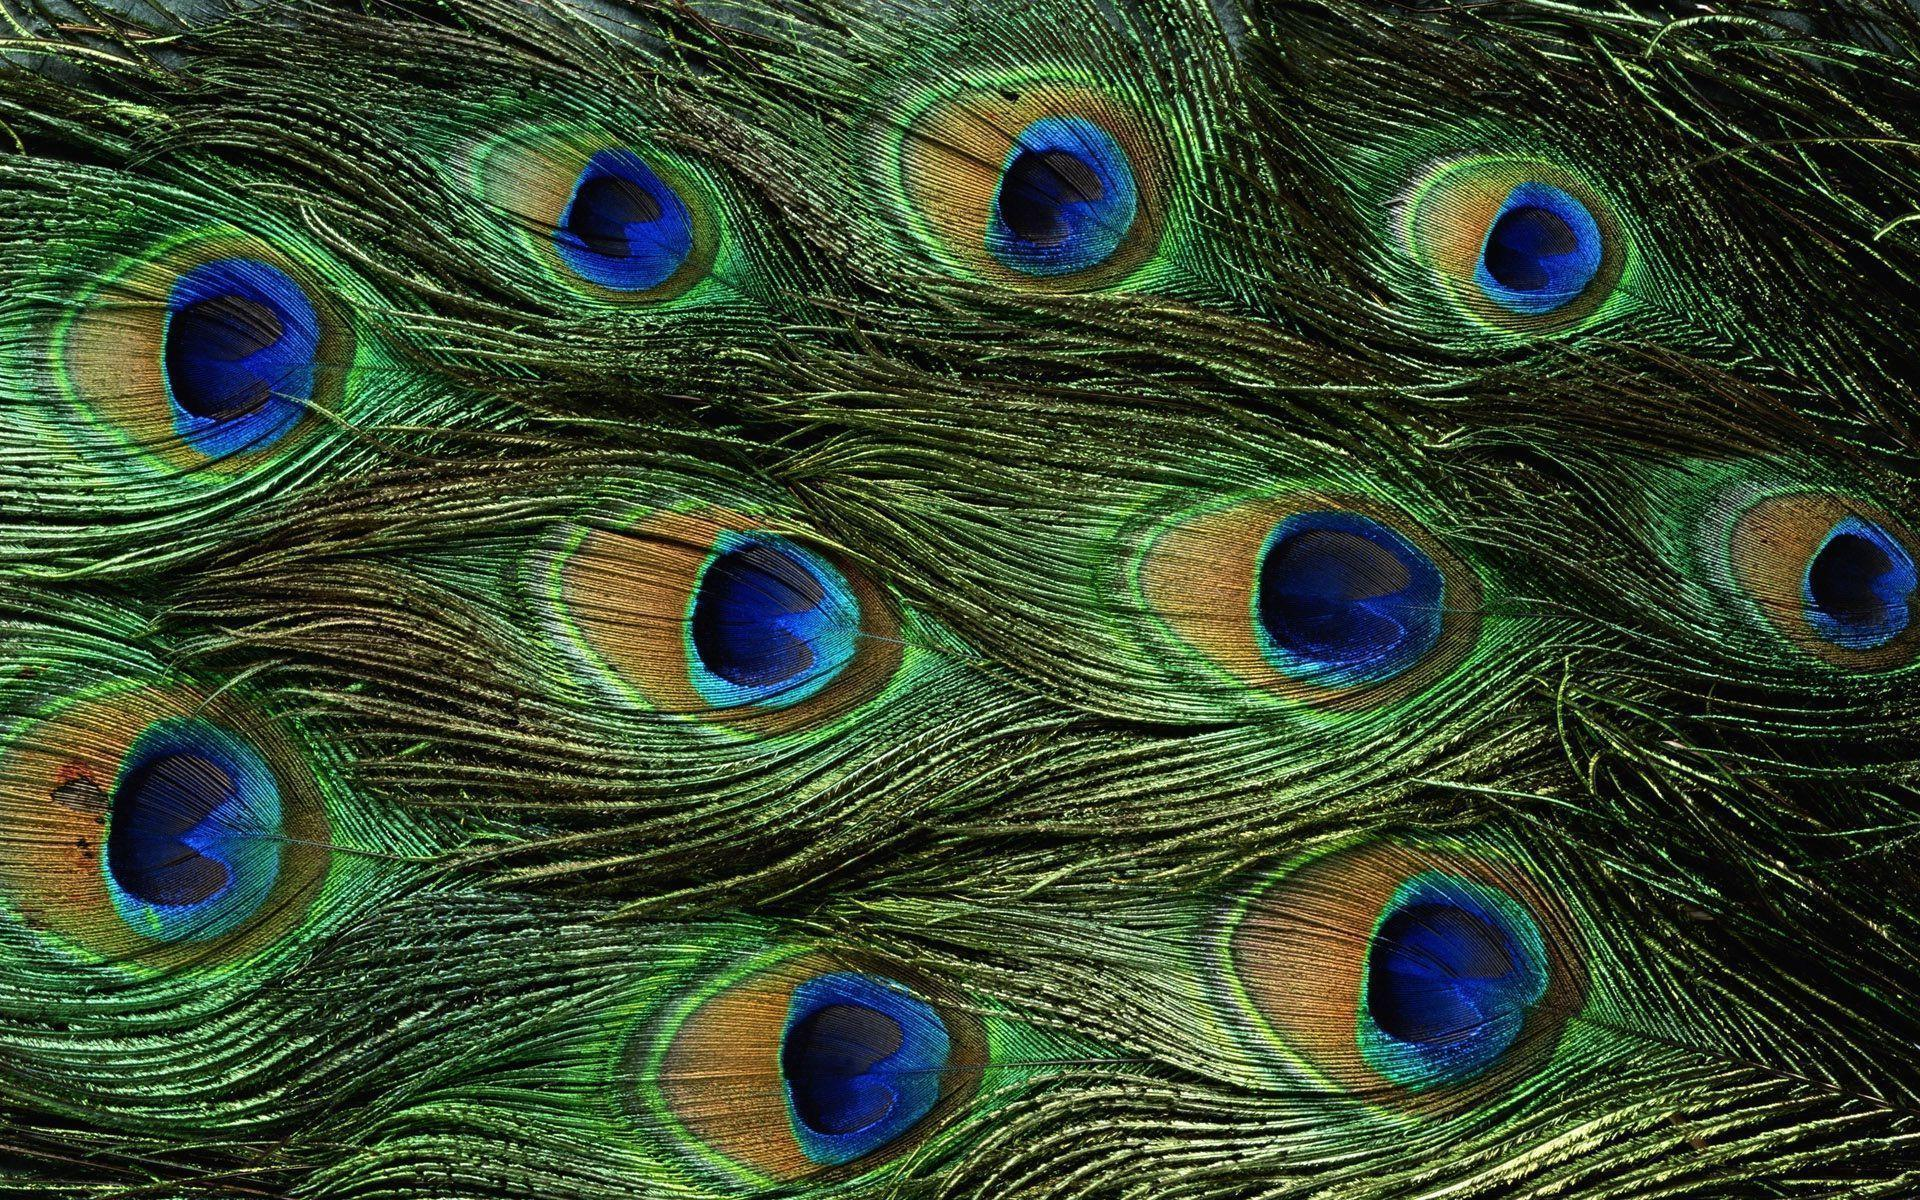 Peacock Art Photography Wallpaper Hq Backgrounds